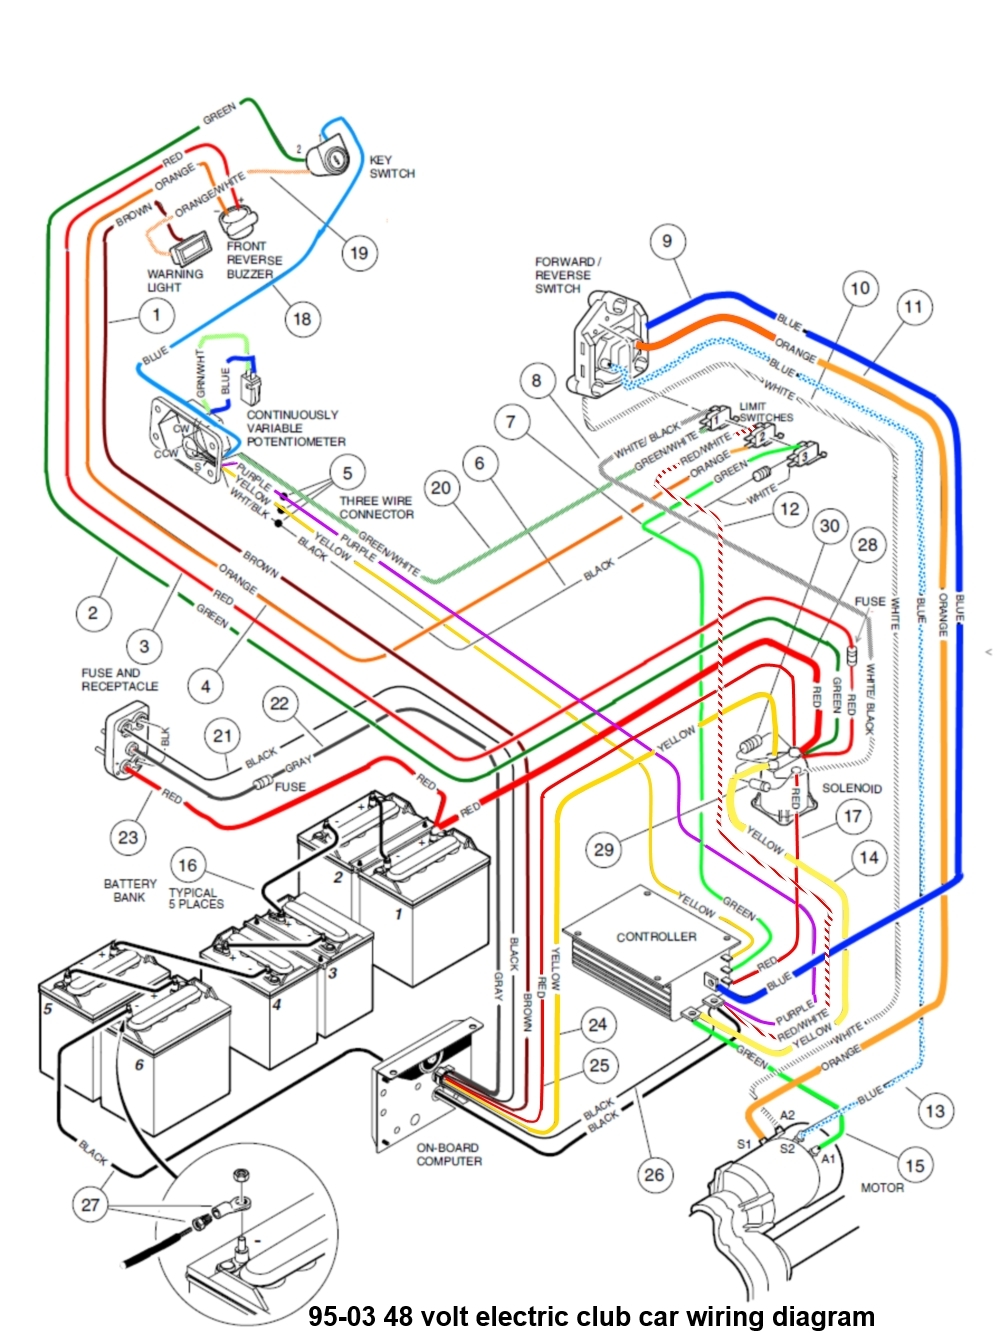 ingersoll rand club car wiring diagram and wiring diagram for 1999 pertaining to club car golf cart parts diagram ingersoll rand club car wiring diagram and wiring diagram for 1999 ingersoll rand wiring diagrams at arjmand.co